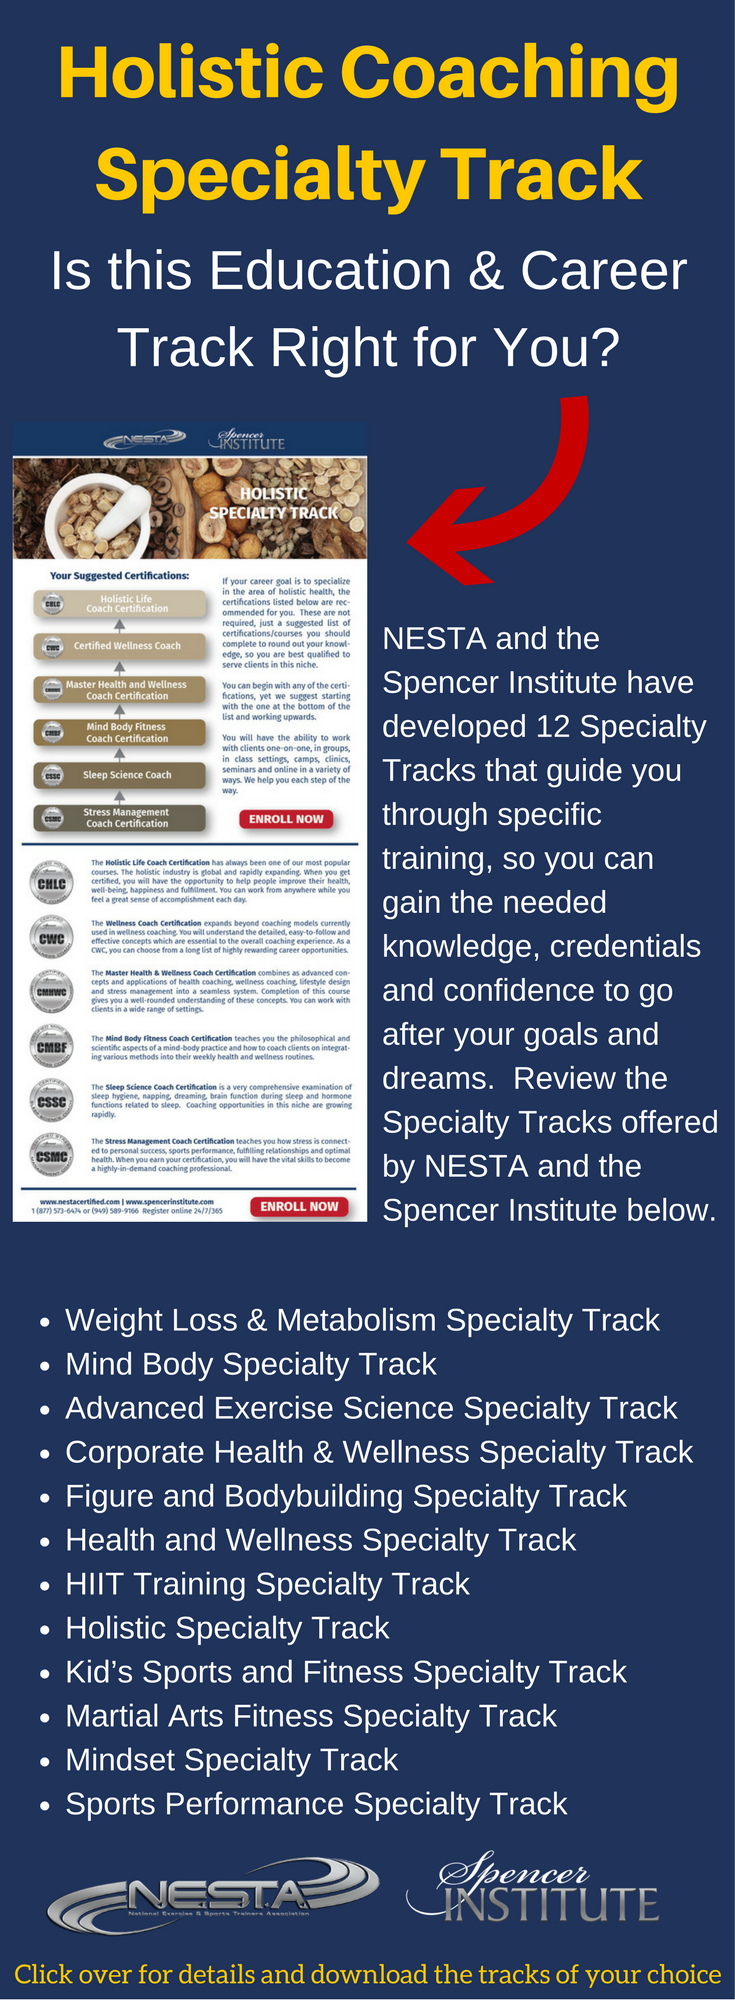 Decide Which Training And Coaching Career Track Is Best For You